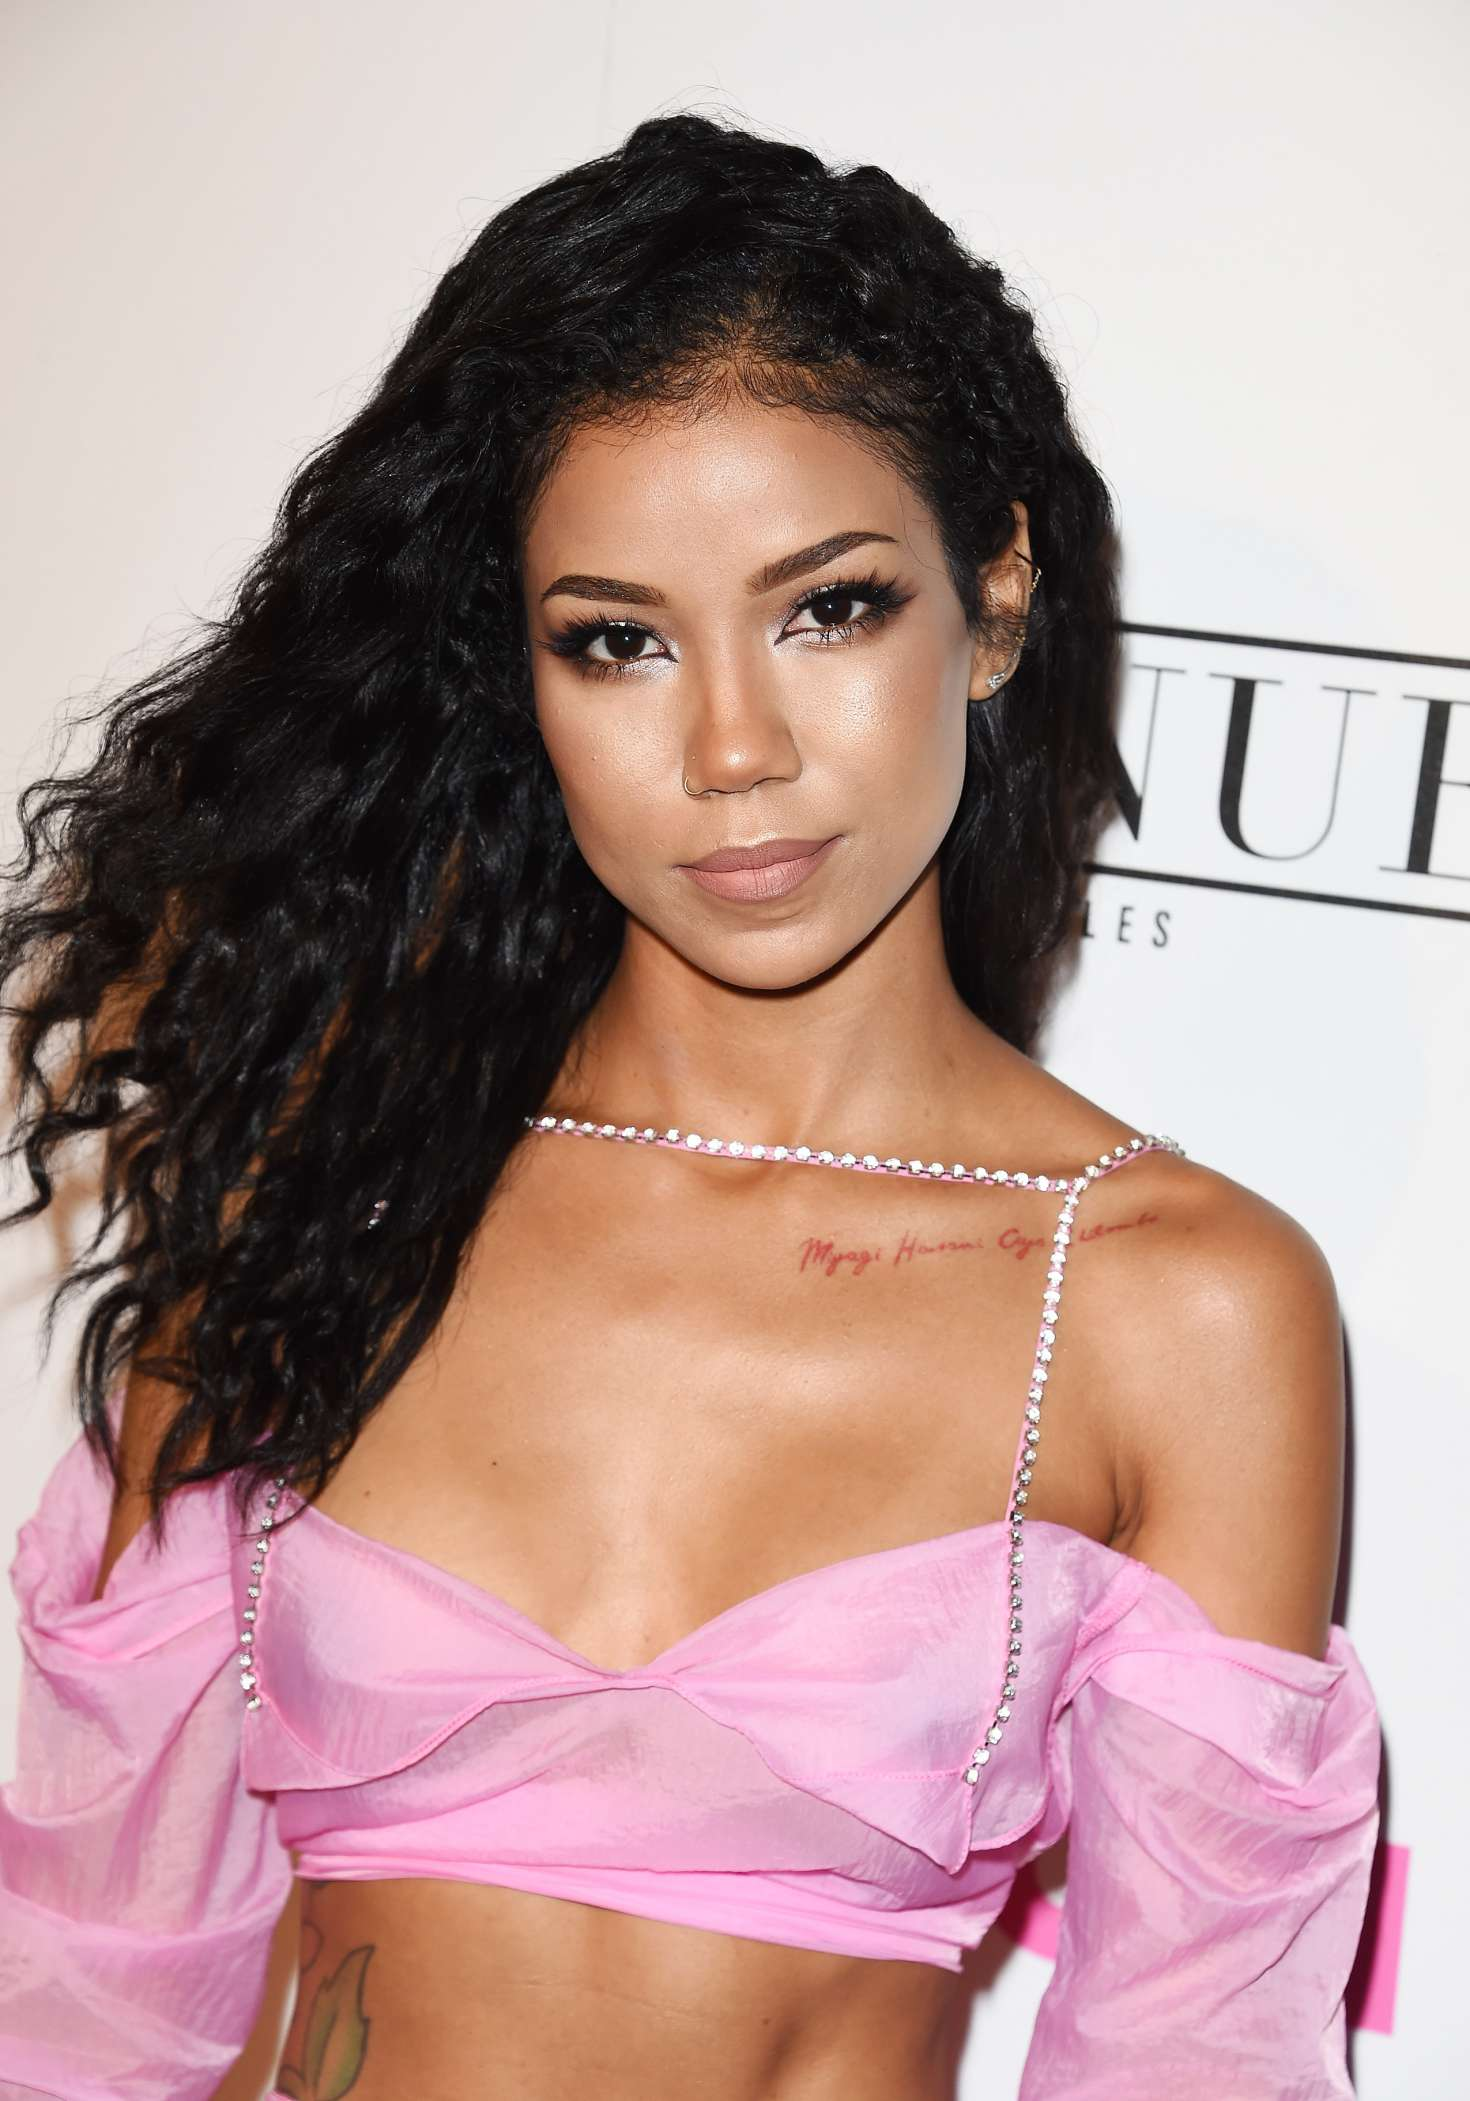 http://www.gotceleb.com/wp-content/uploads/photos/jhene-aiko/nylon-young-hollywood-may-issue-event-in-la/Jhene-Aiko:-Nylon-Young-Hollywood-May-Issue-Event--02.jpg Jhene Aiko 2017 Photoshoot